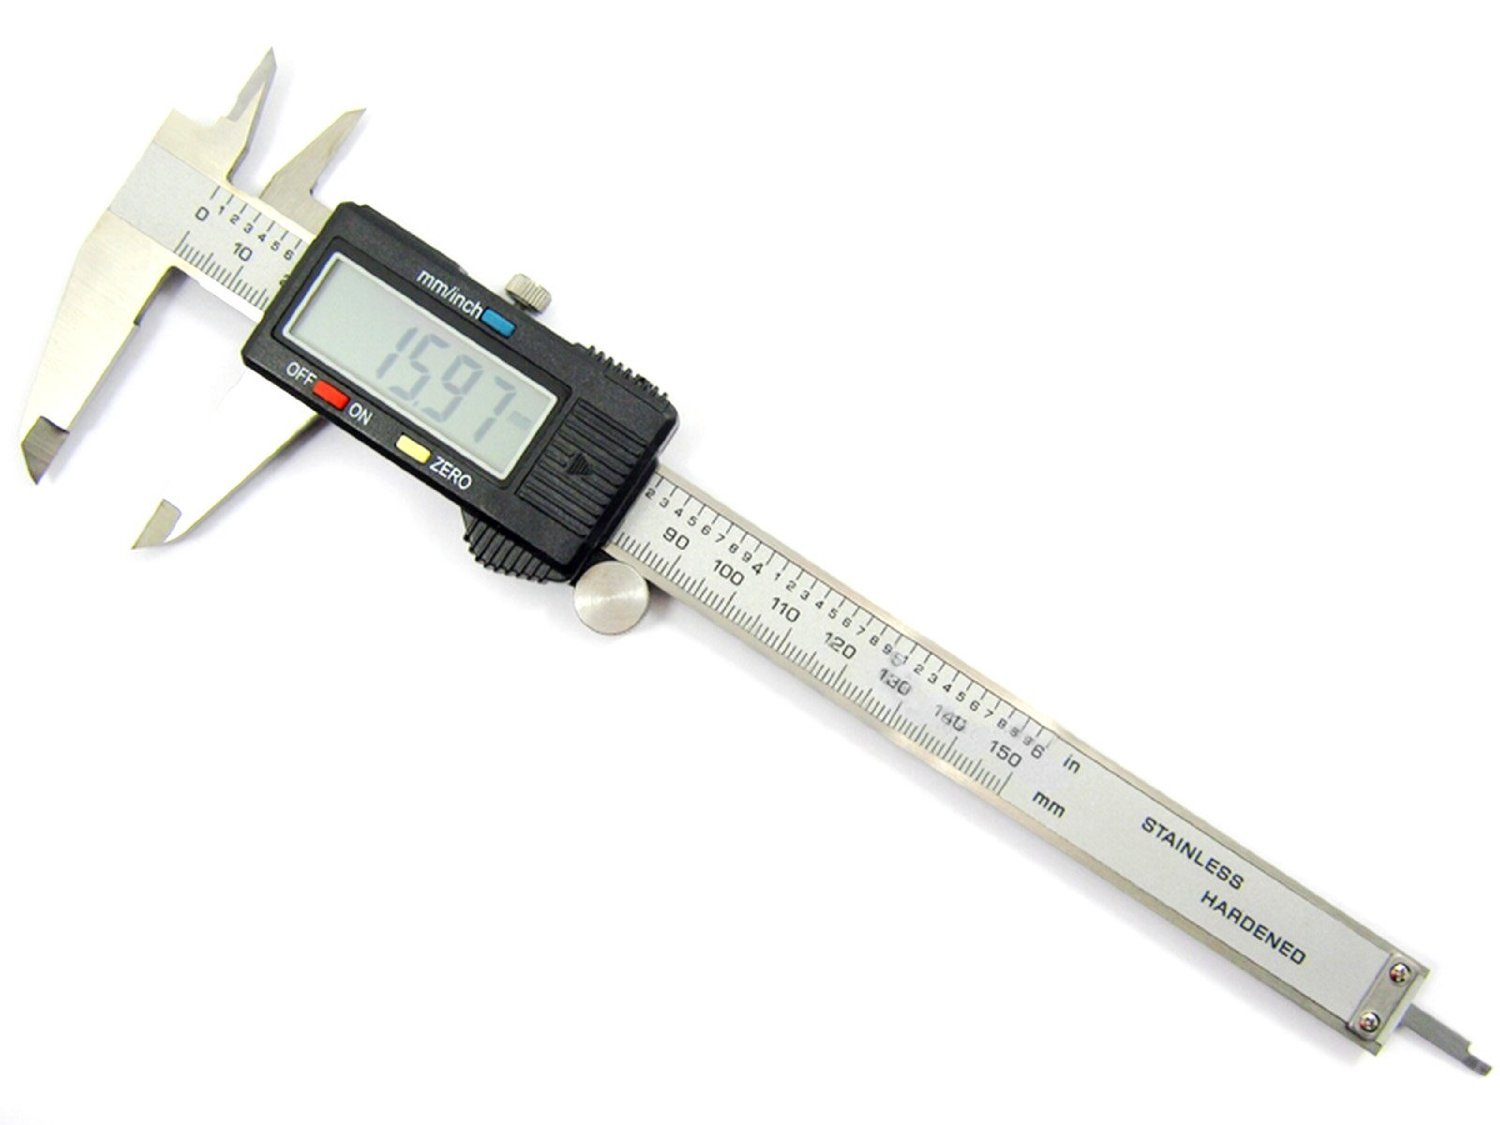 LOOYUAN Stainless Steel Vernier Digital Electronic Caliper Inch/Metric Conversion 0-6 inch / 150mm Gauge Measuring tools With LCD Screen